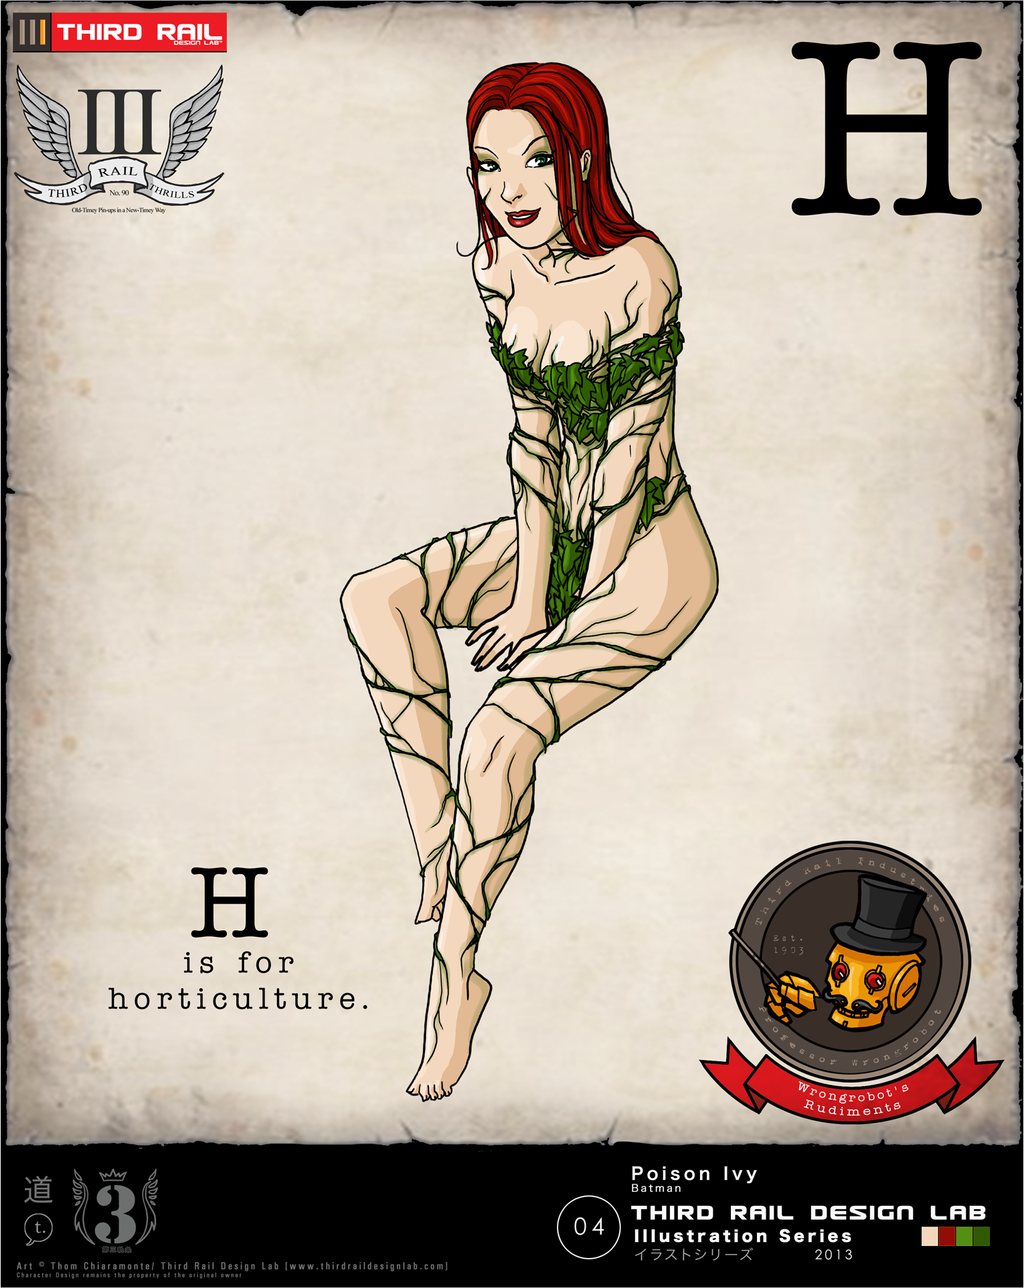 TRDL 2013 Series No. 4 - Poison Ivy by TRDLcomics